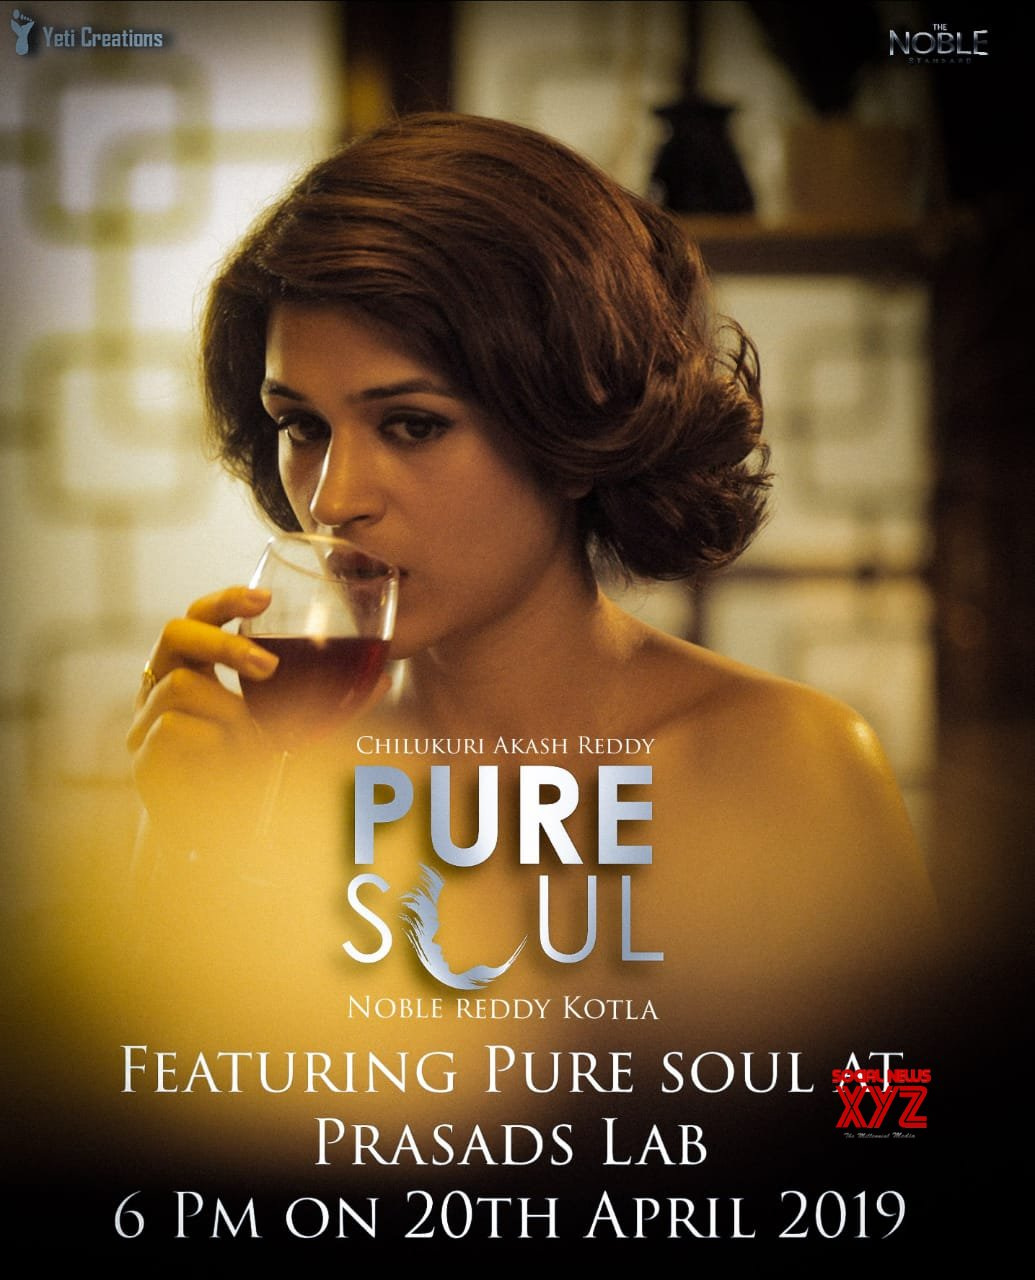 Shraddha Das's Pure Soul Short Film Featuring At Prasad Labs At 6 PM On 20th April